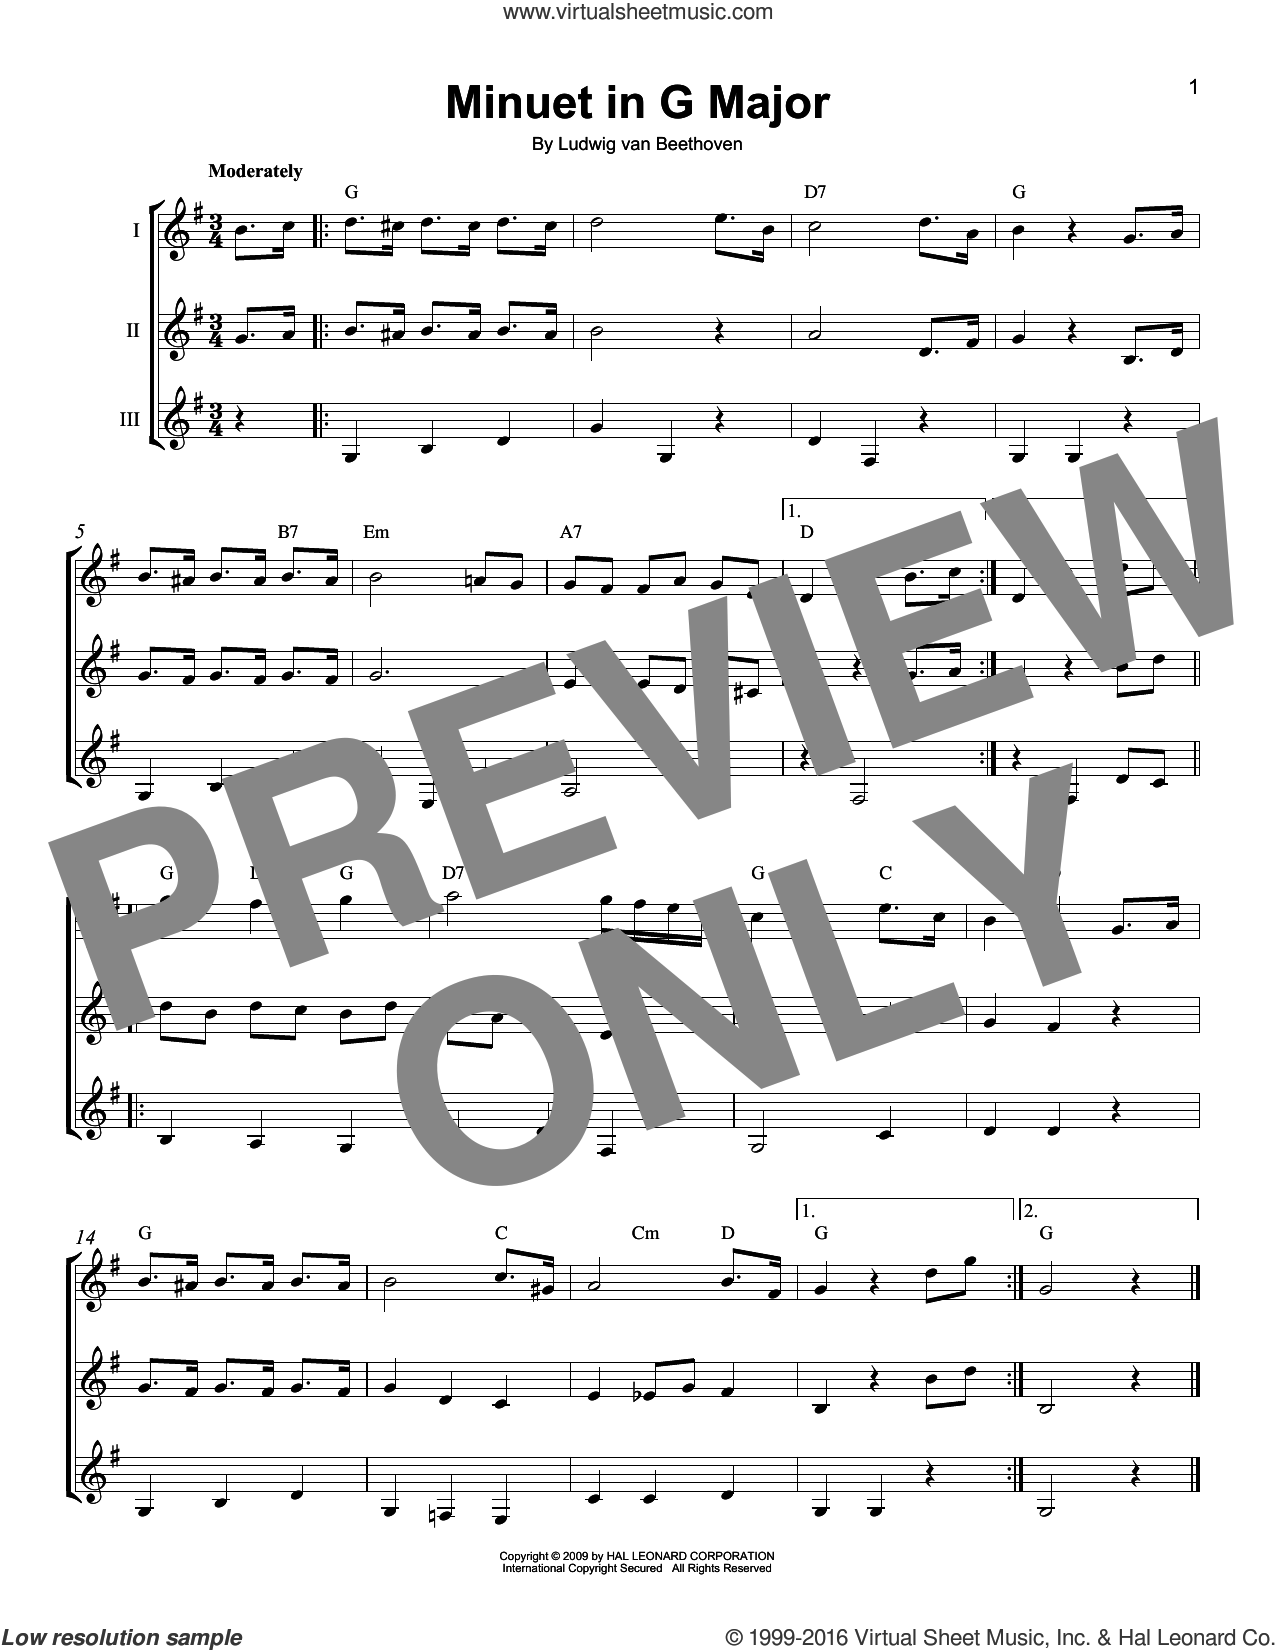 Minuet In G Major sheet music for guitar ensemble by Ludwig van Beethoven, classical score, intermediate skill level